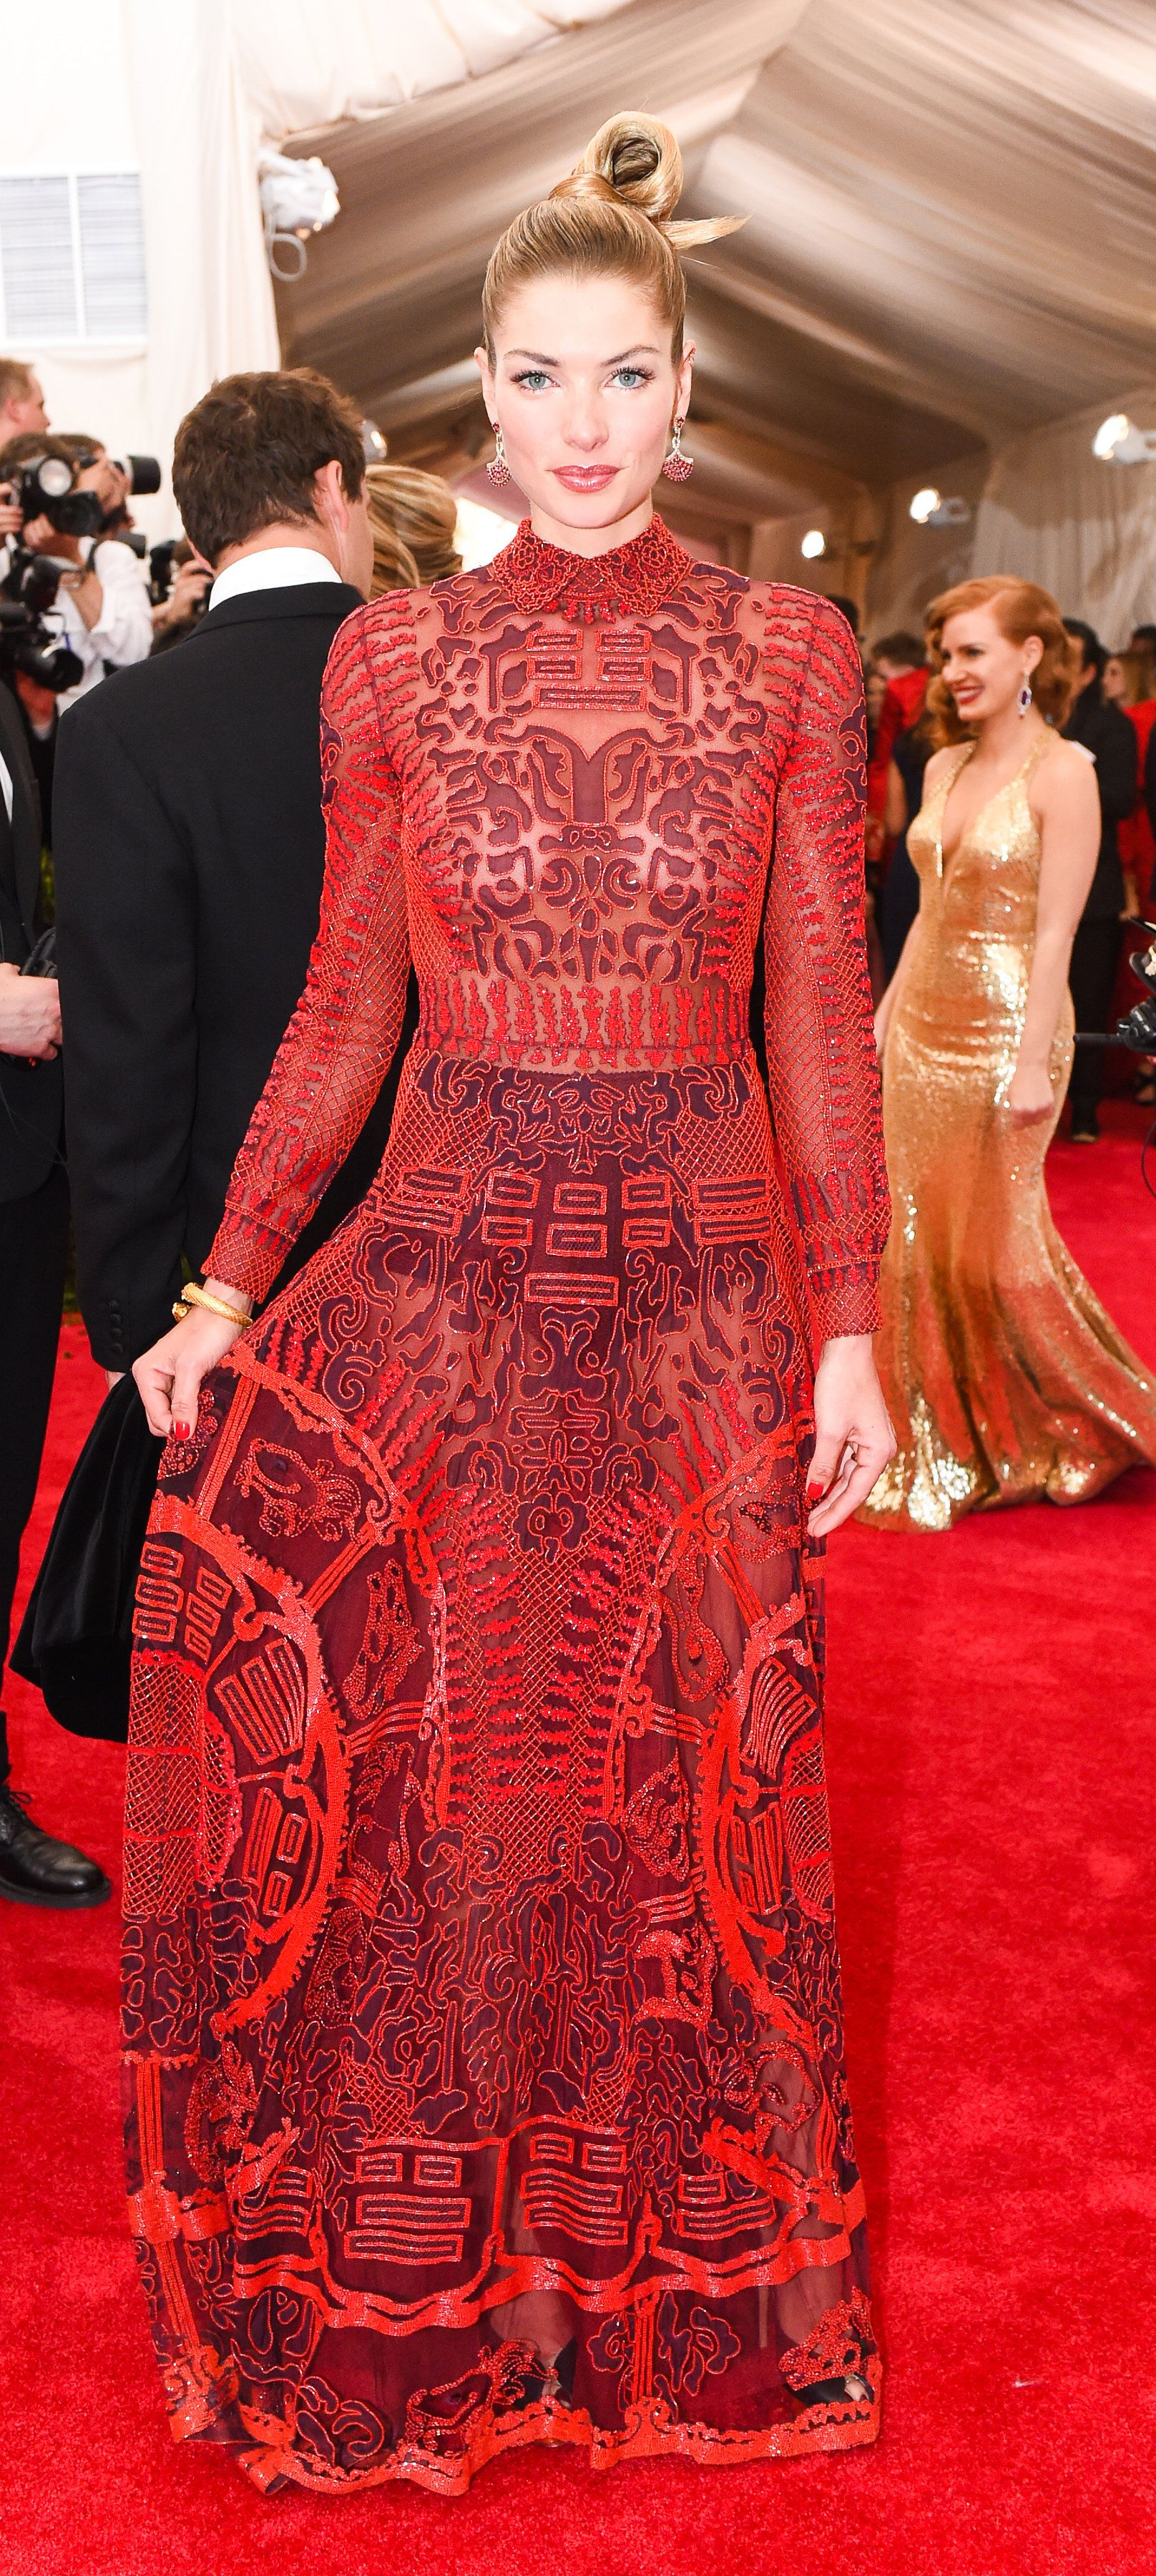 met gala 2015 the best dressed celebrities on the red carpet jessica hart valentino dress. Black Bedroom Furniture Sets. Home Design Ideas